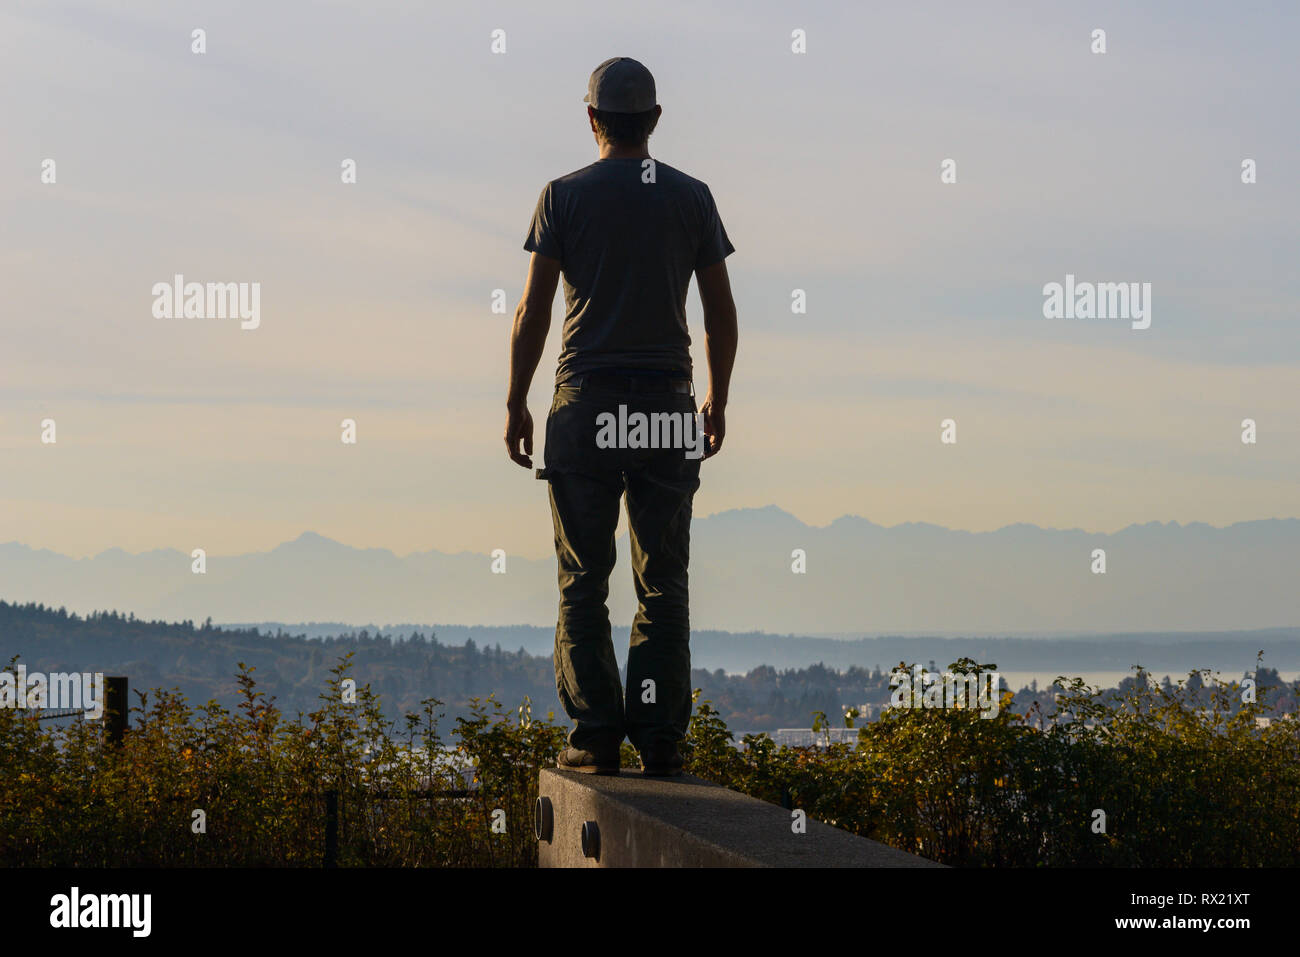 Rear view of man looking at view while standing on retaining wall against cloudy sky during sunset Stock Photo